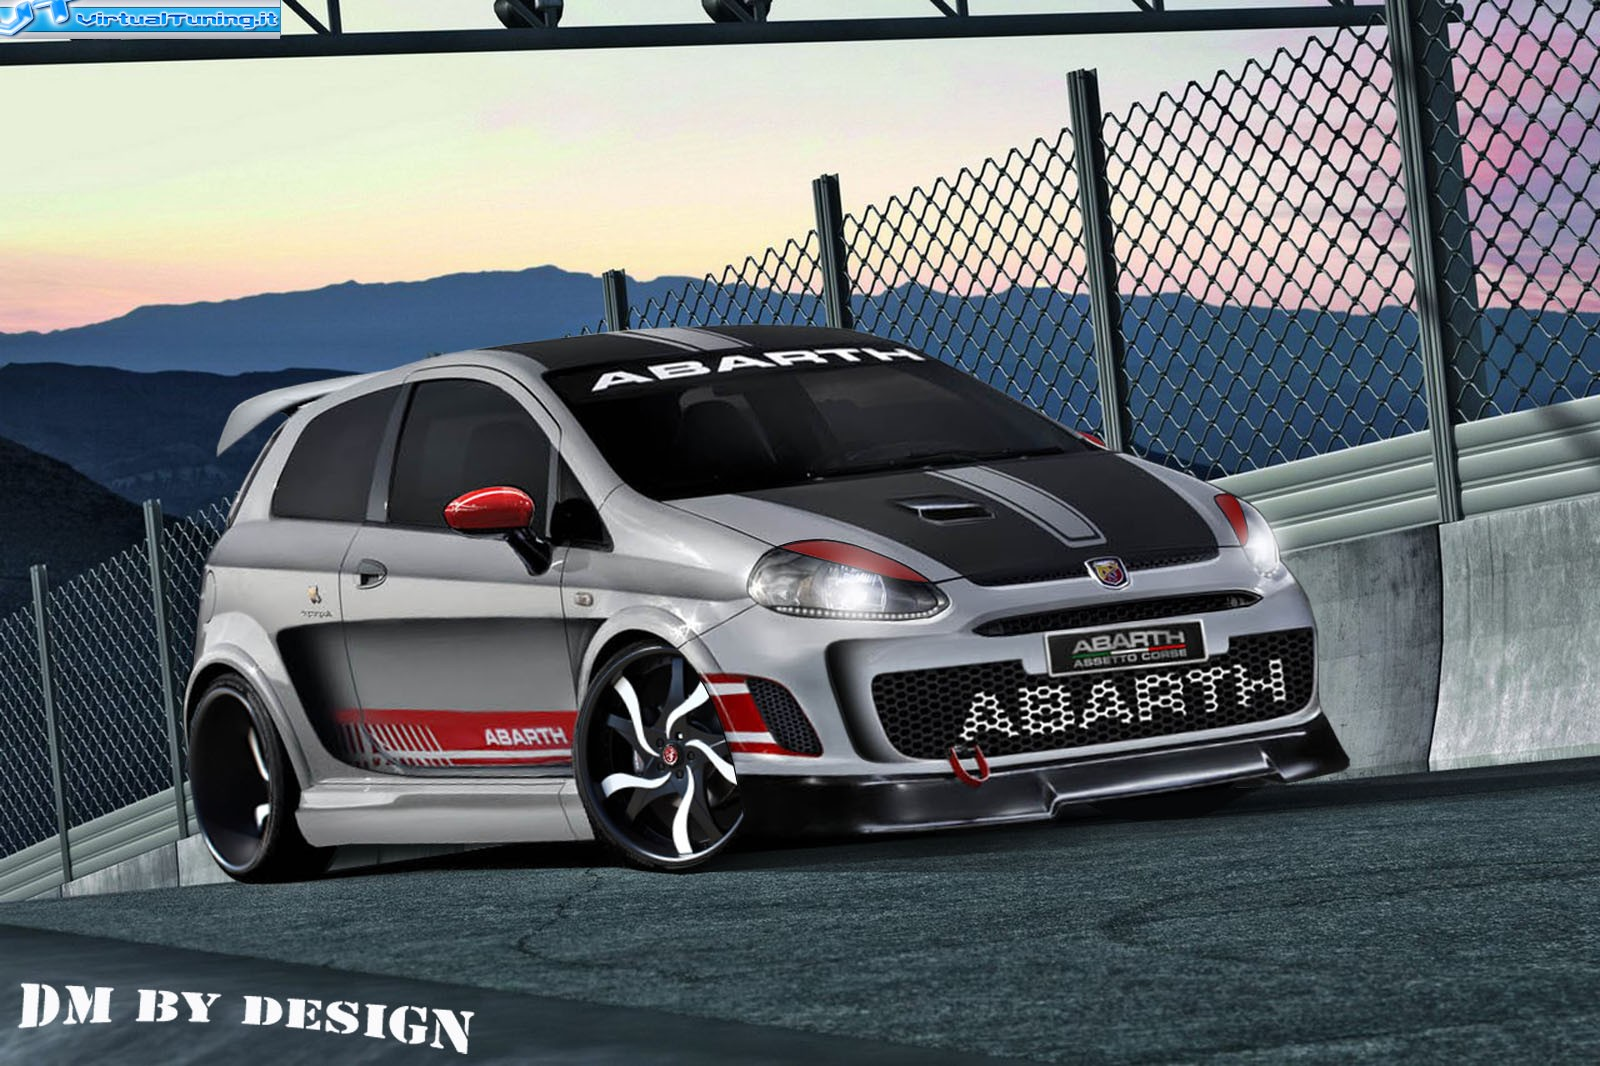 fiat grande punto abarth by dm by design virtualtuning it. Black Bedroom Furniture Sets. Home Design Ideas